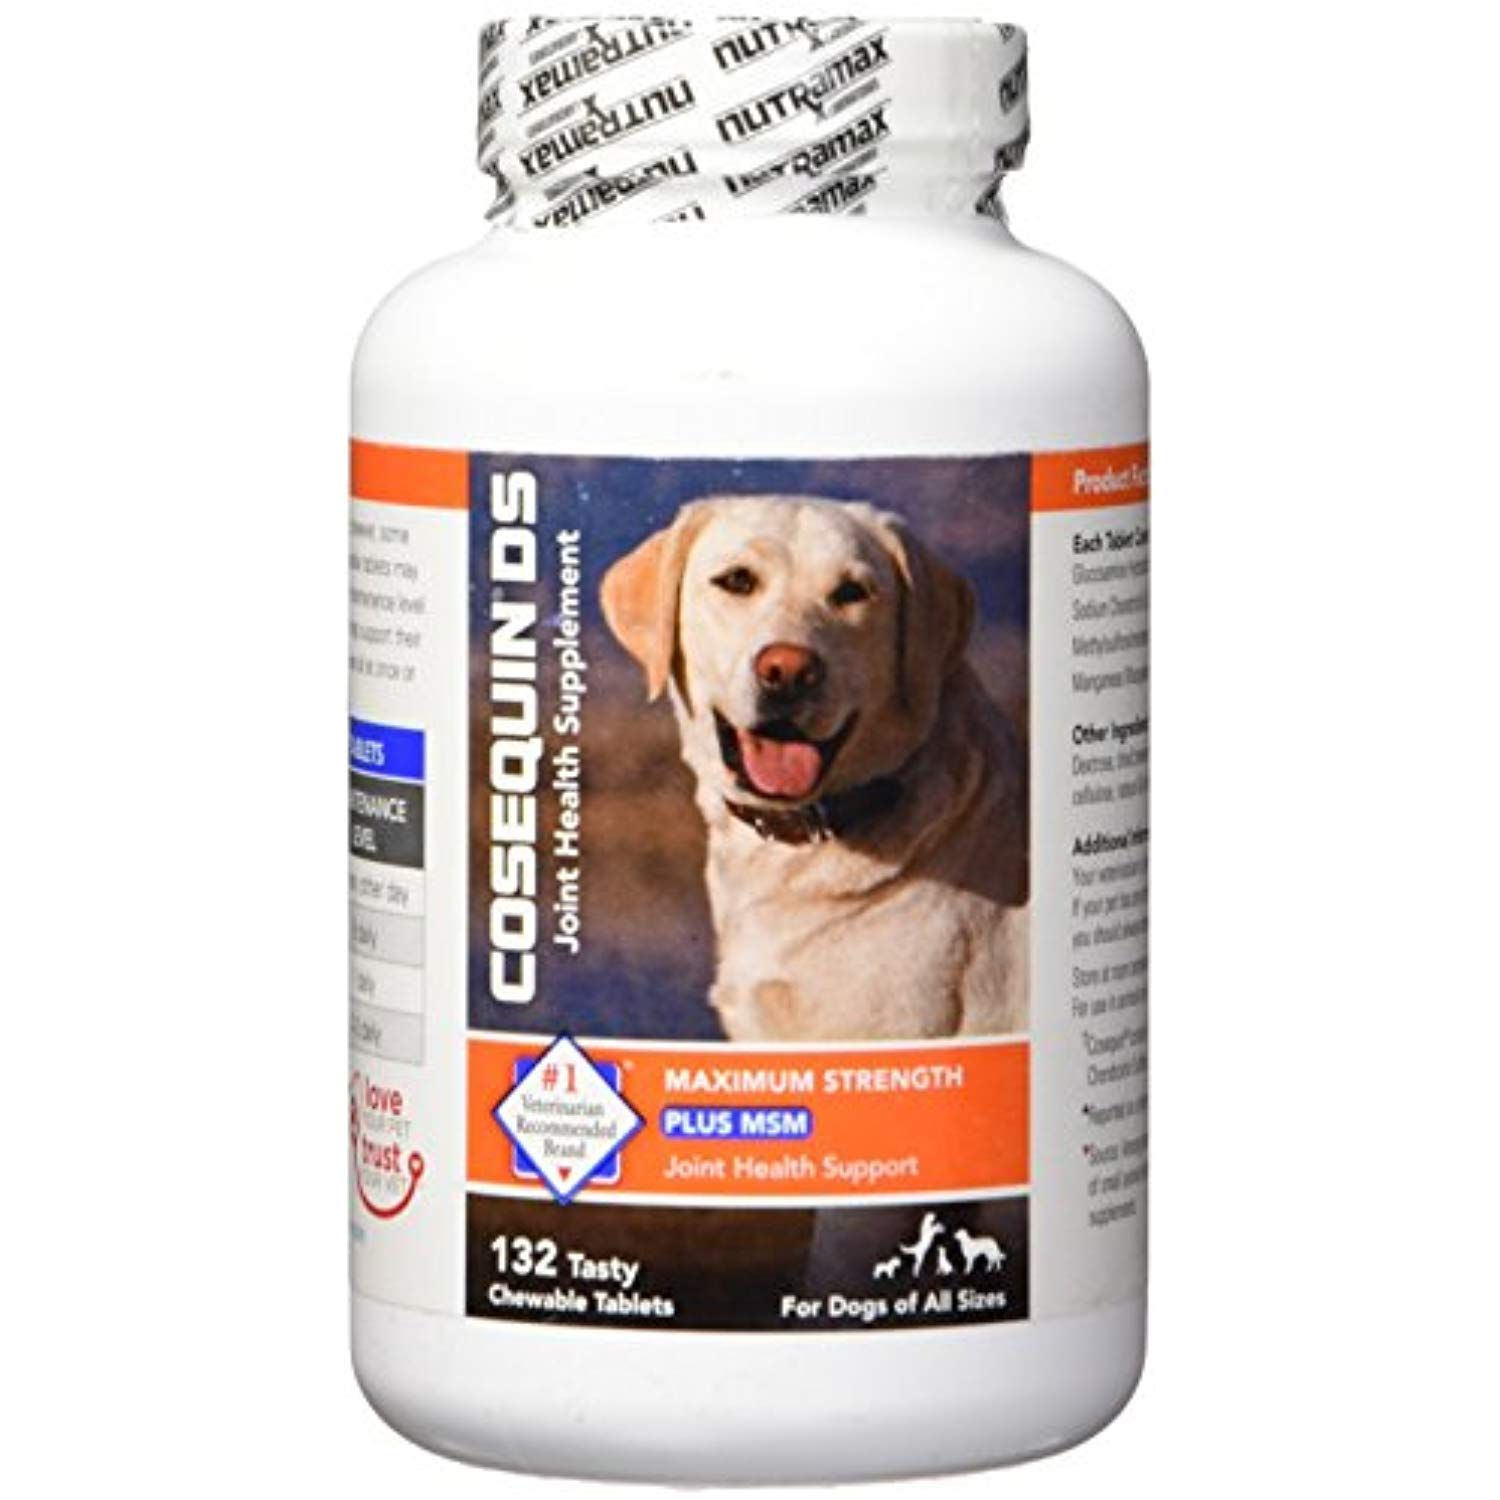 Nutramax Cosequin DS Plus with MSM Chewable Tablets, 132